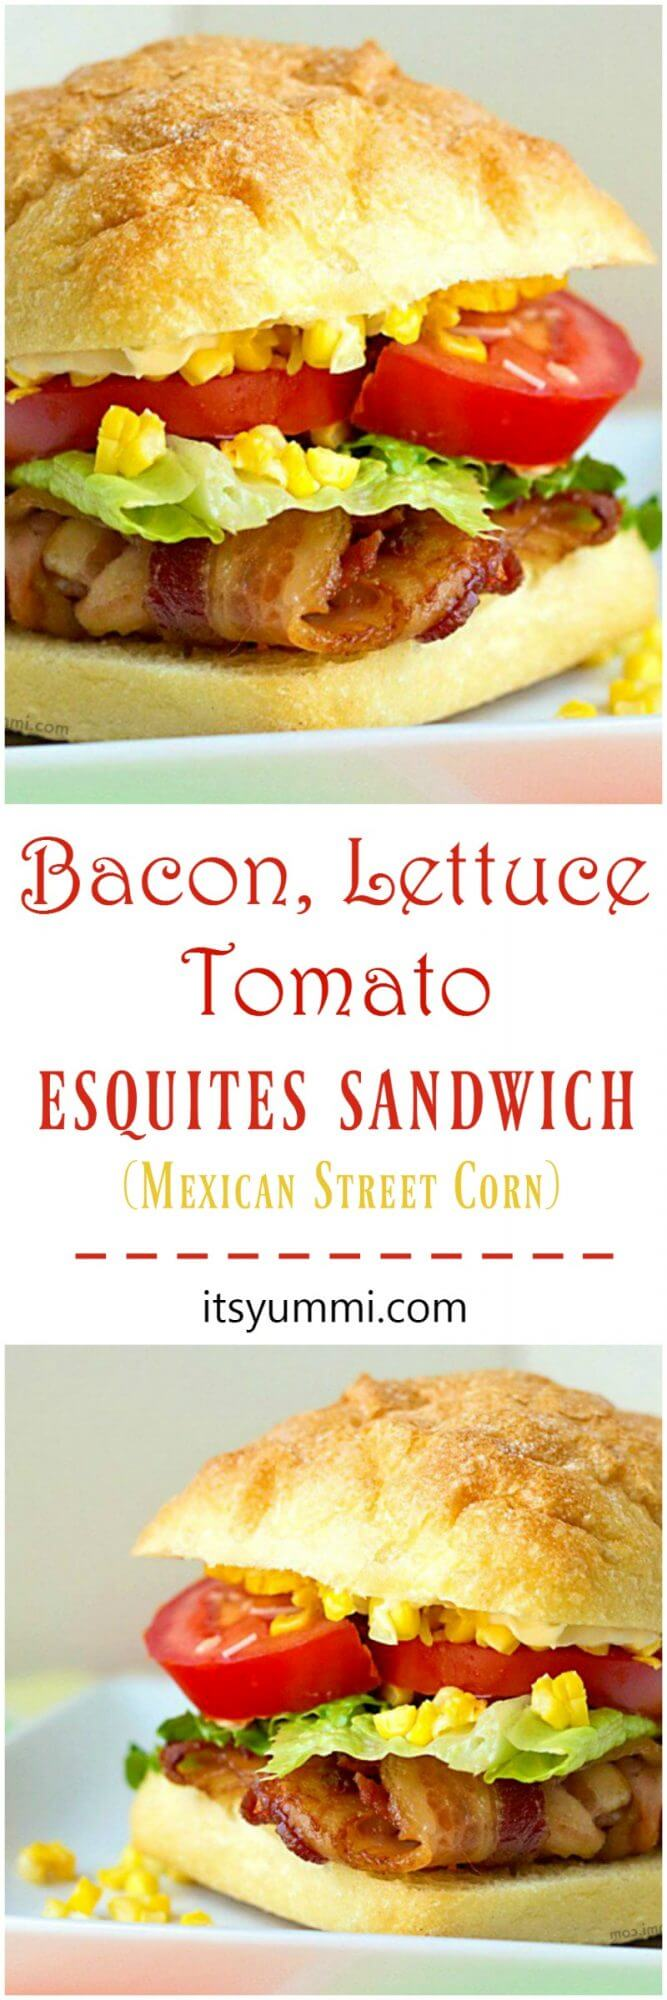 BLT Esquites Sandwich - A traditional bacon, lettuce, and tomato sandwich is kicked into high gear by adding Mexican street corn salsa and a weave of bacon! - Recipe from @itsyummi